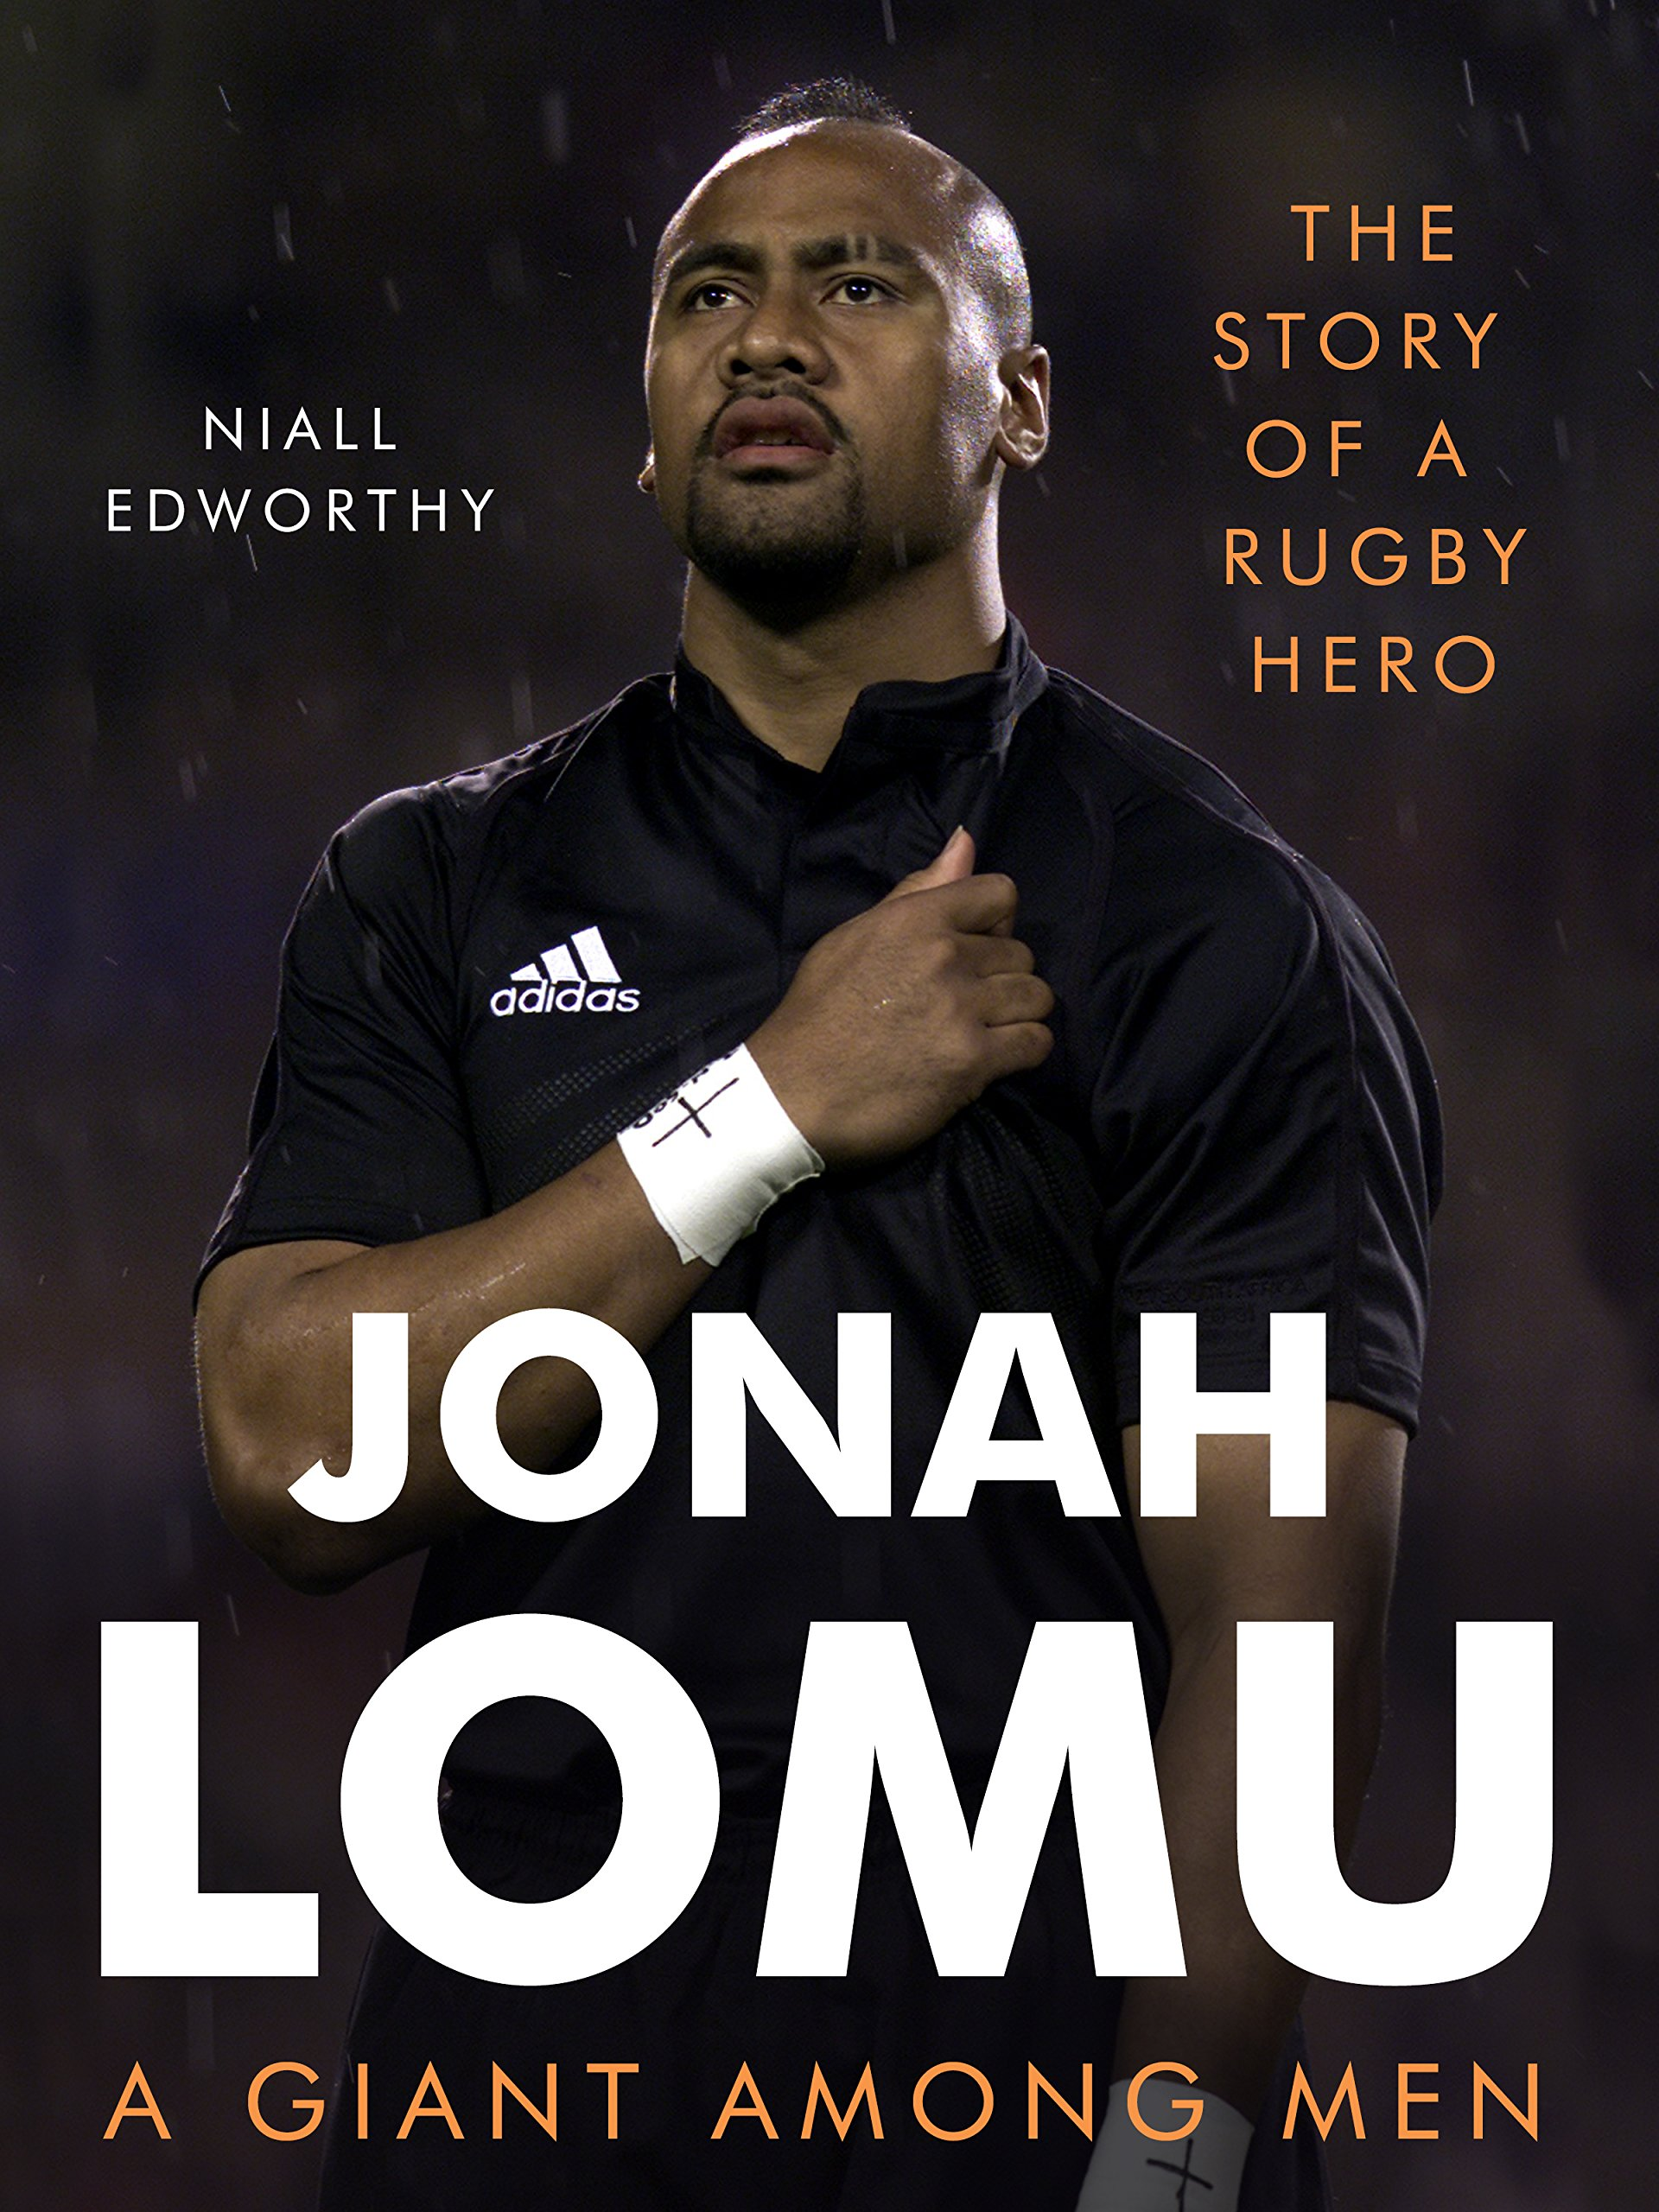 Image OfJonah Lomu, A Giant Among Men: The Story Of A Rugby Hero (English Edition)